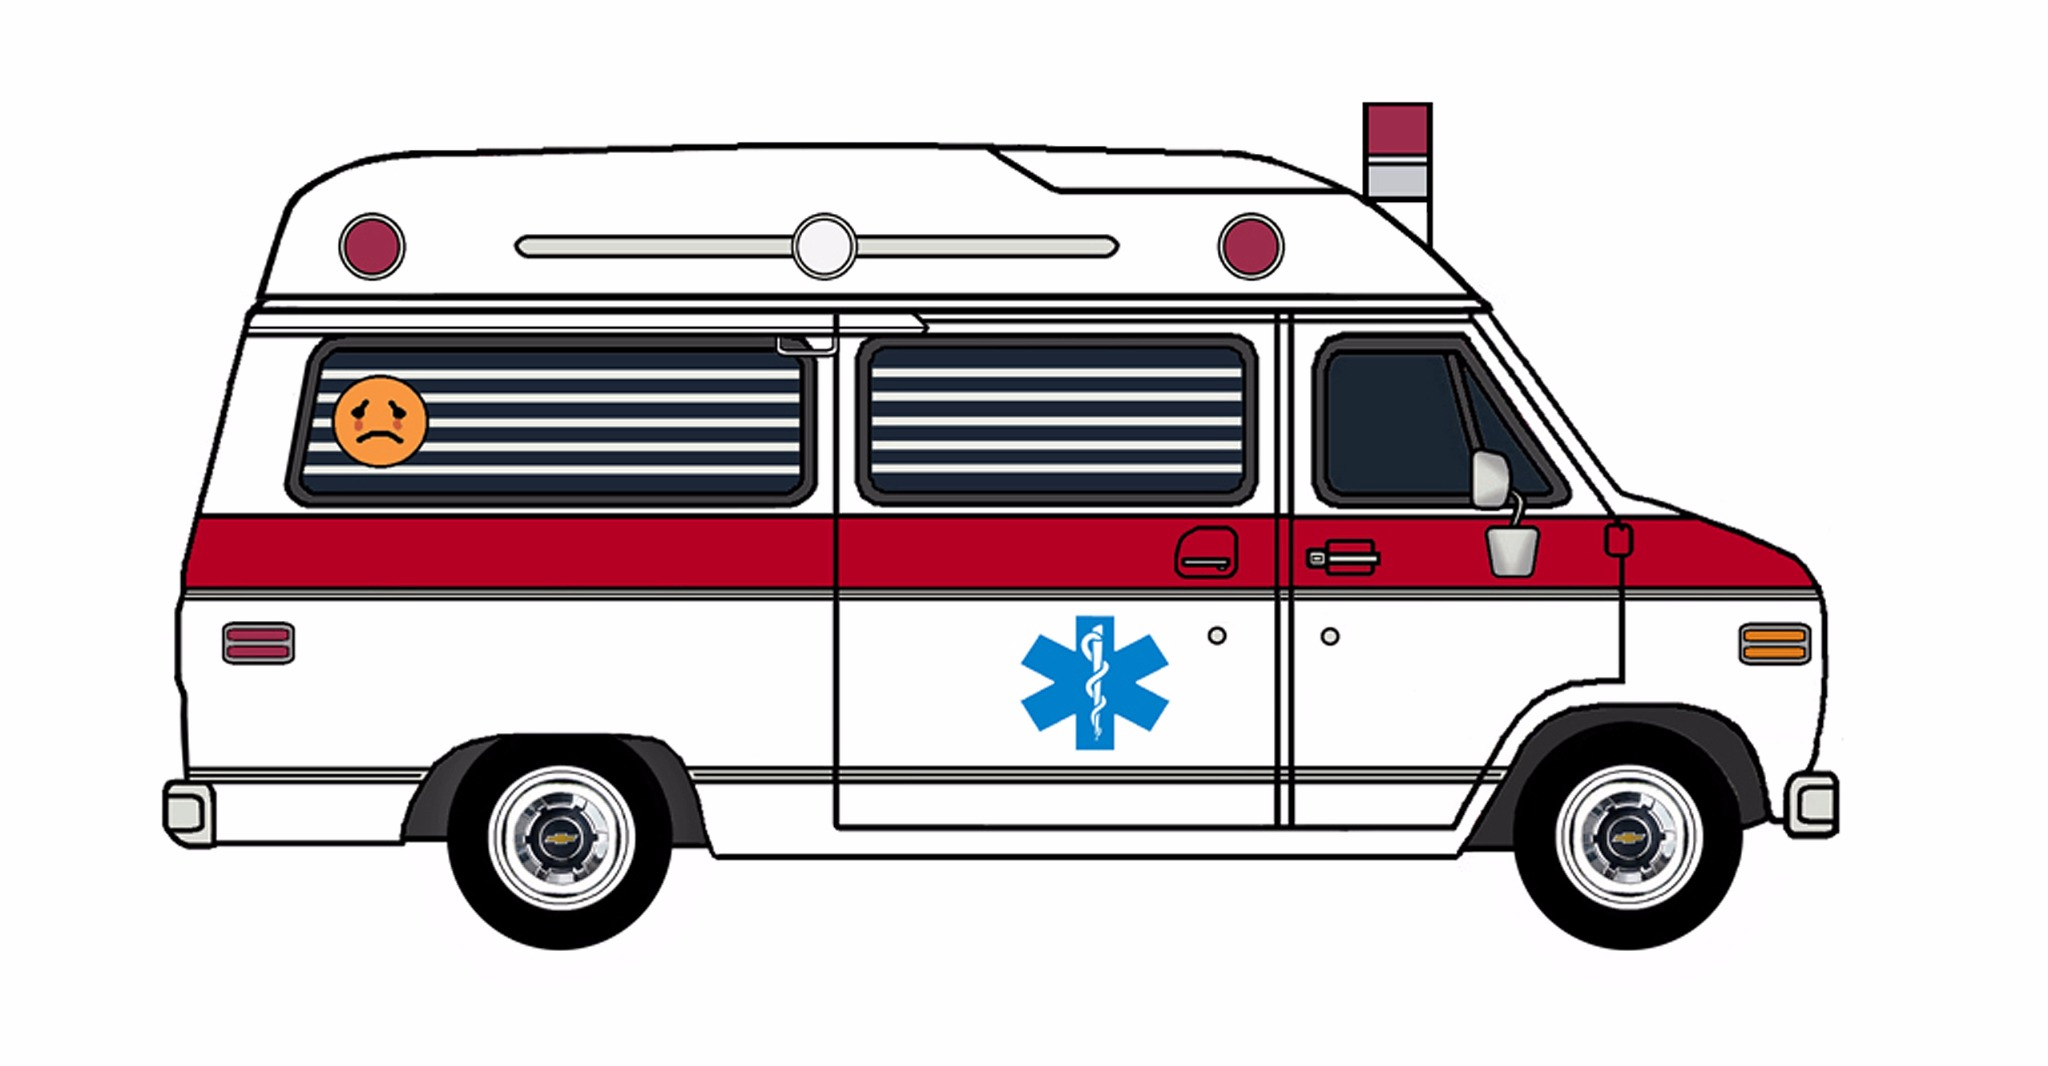 1977 Chevy G20 Ambulance WHITE & FIRE RED